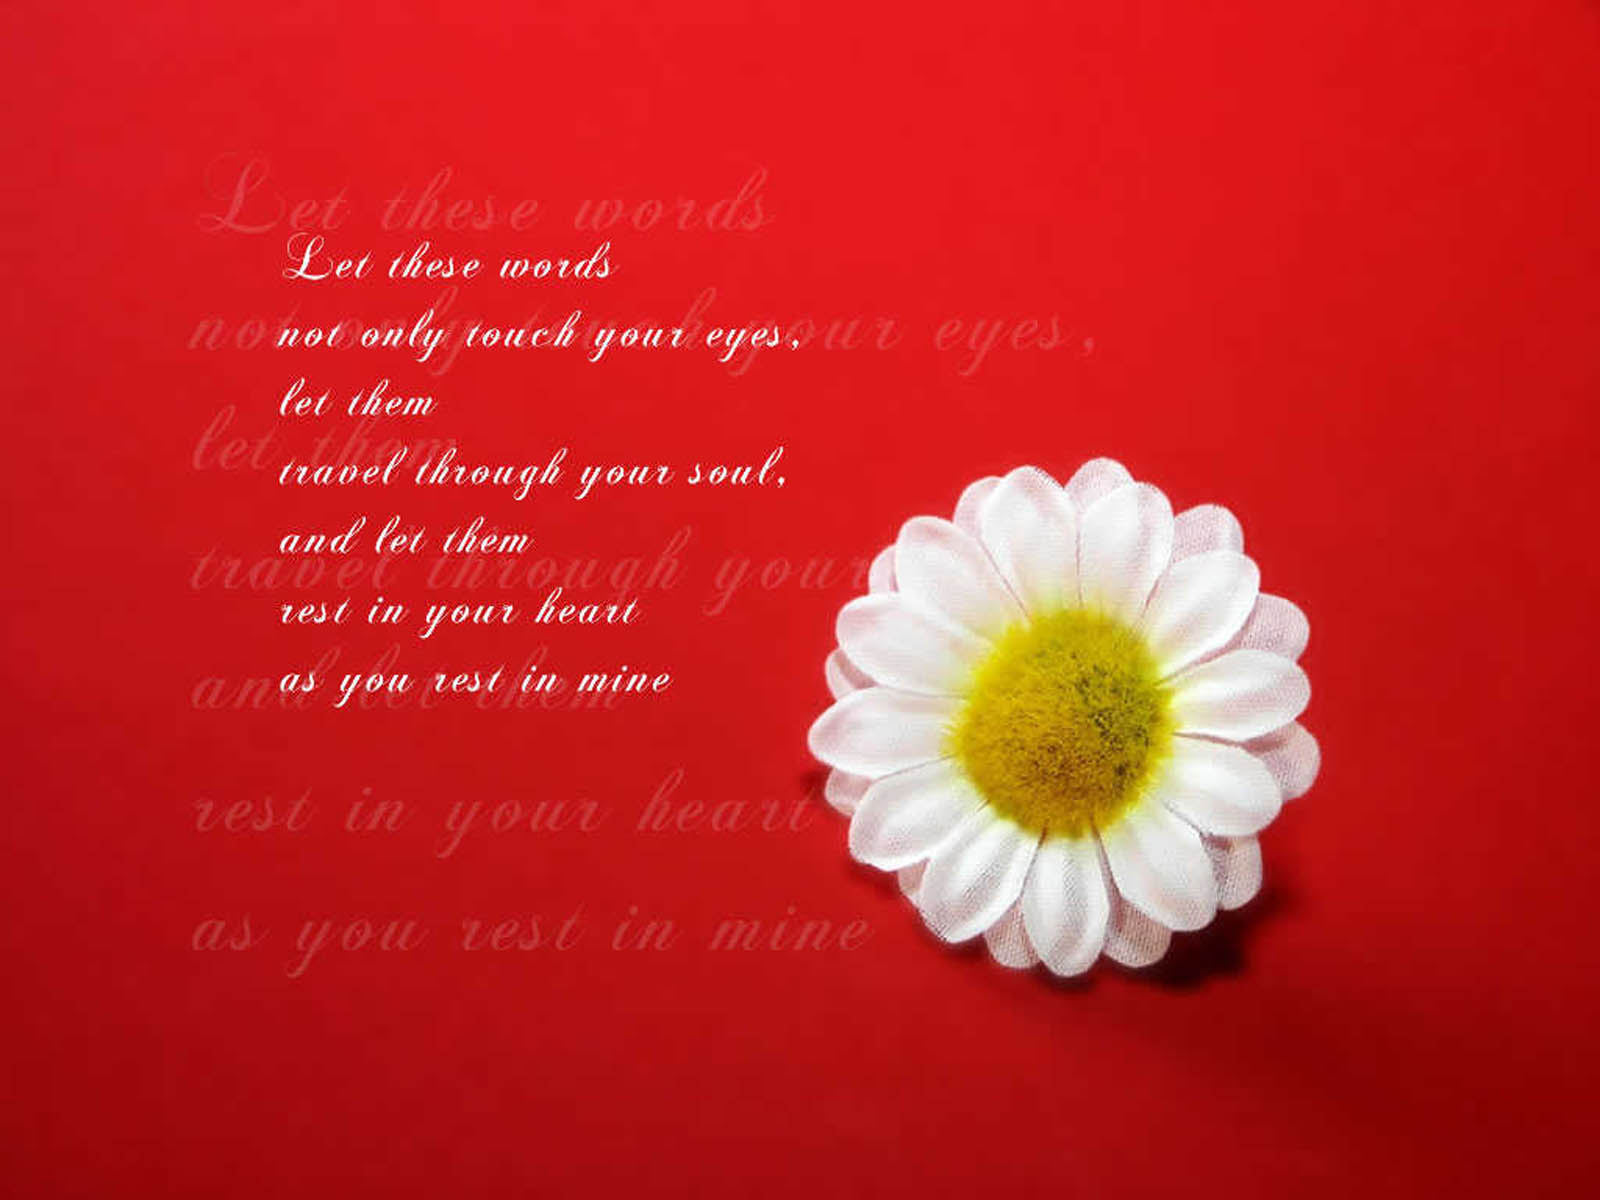 Tag: Love Quotes Wallpapers, Backgrounds,Photos, Images and Pictures